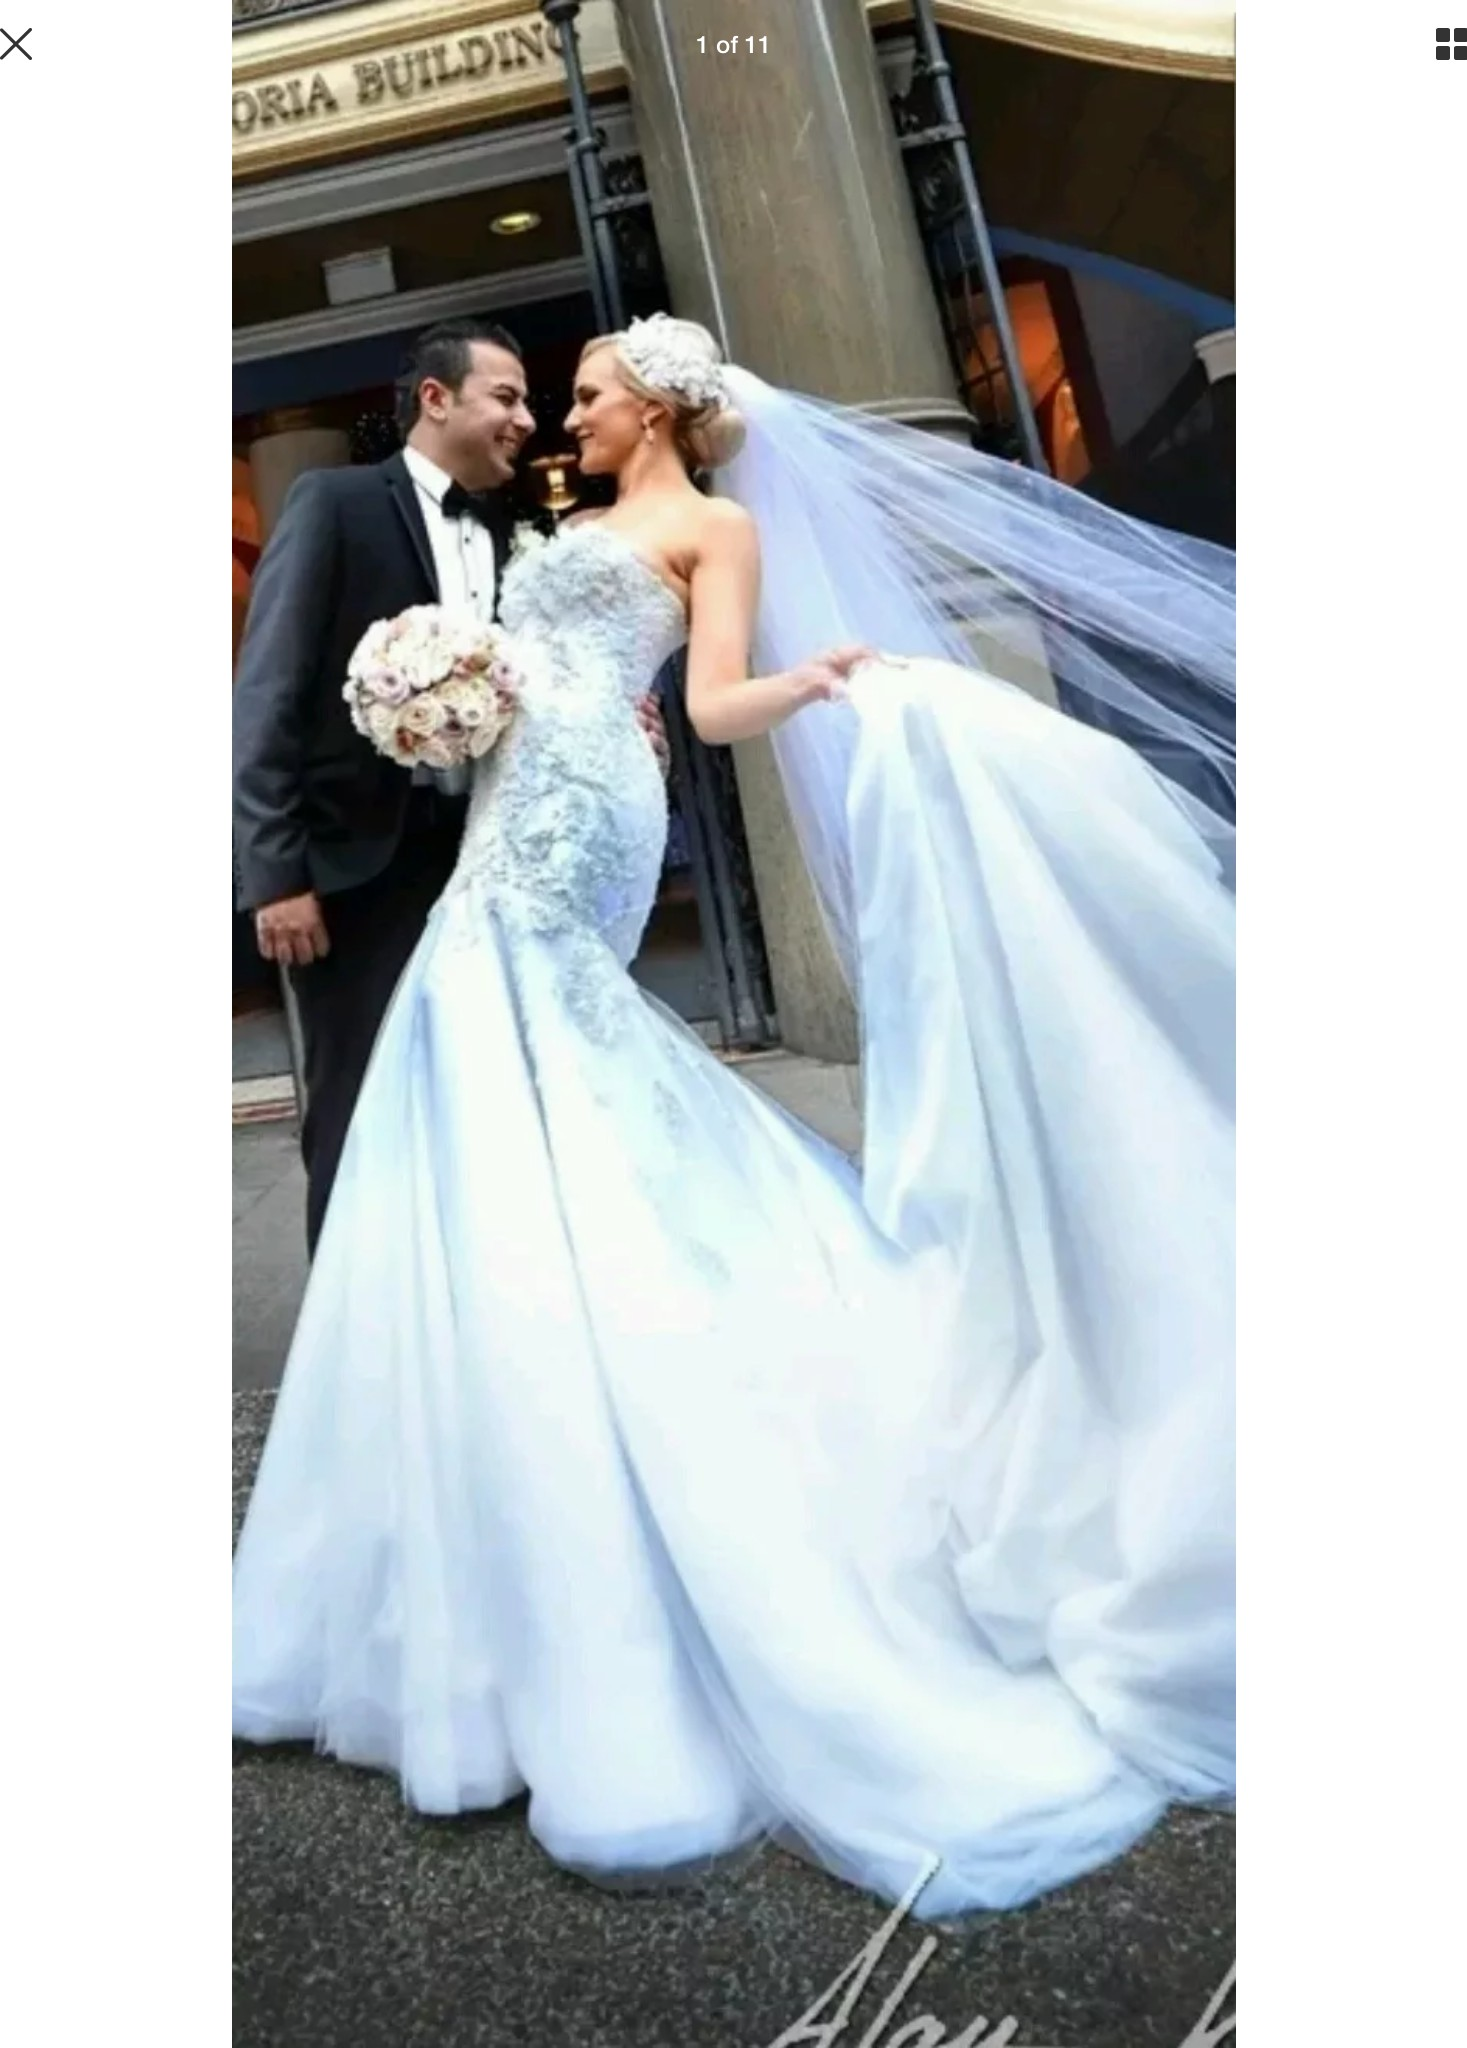 Norma bridal couture preowned wedding dress on sale 99 off for 99 dollar wedding dresses